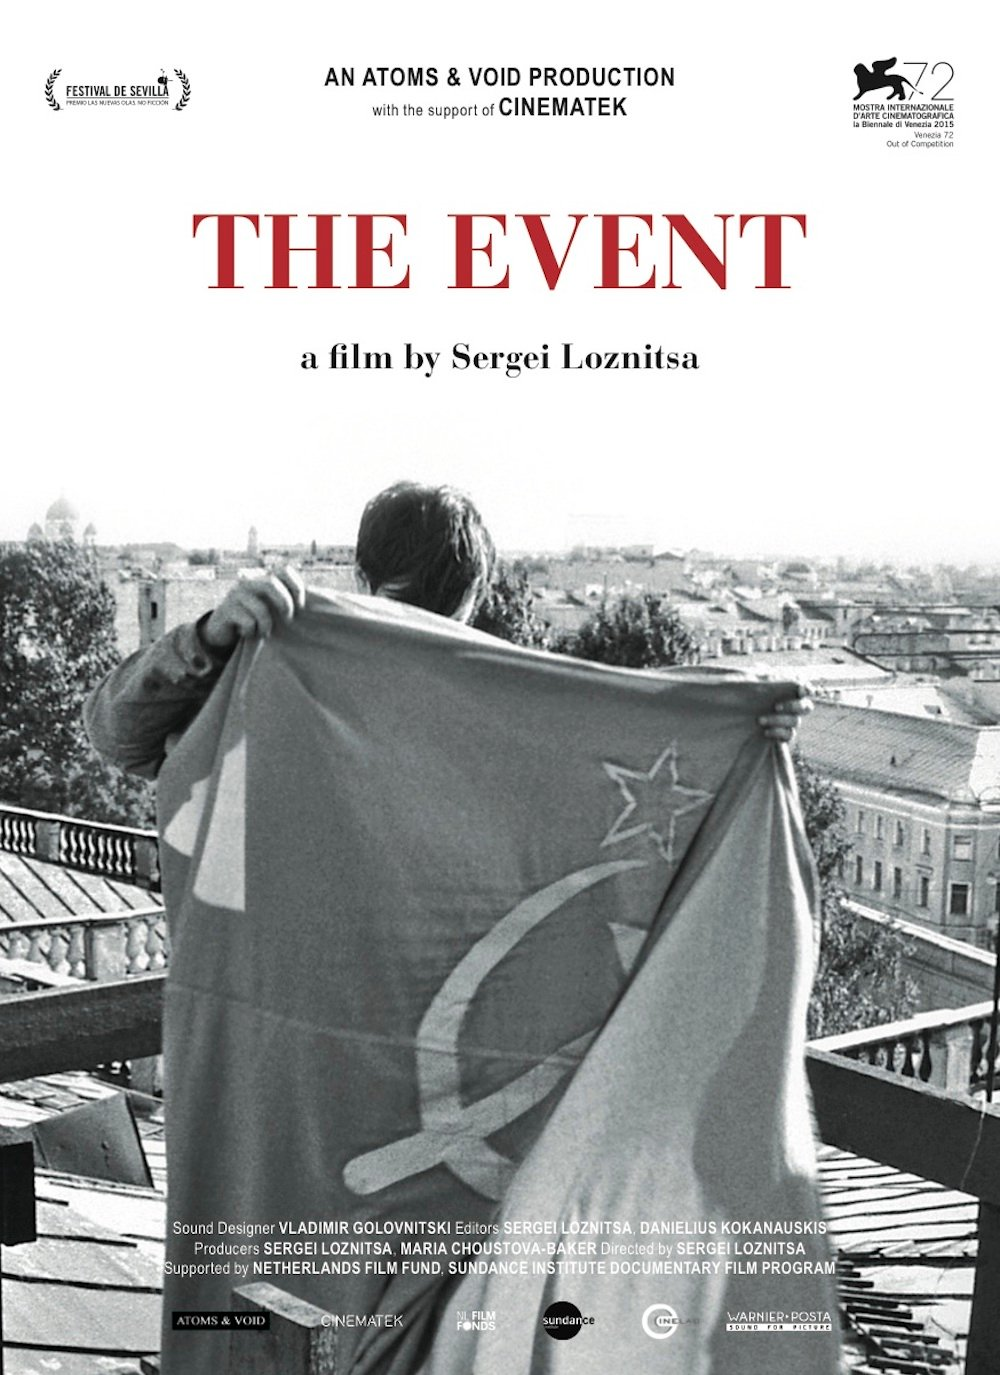 Poster for Sergei Loznitsa's The Event (2015)